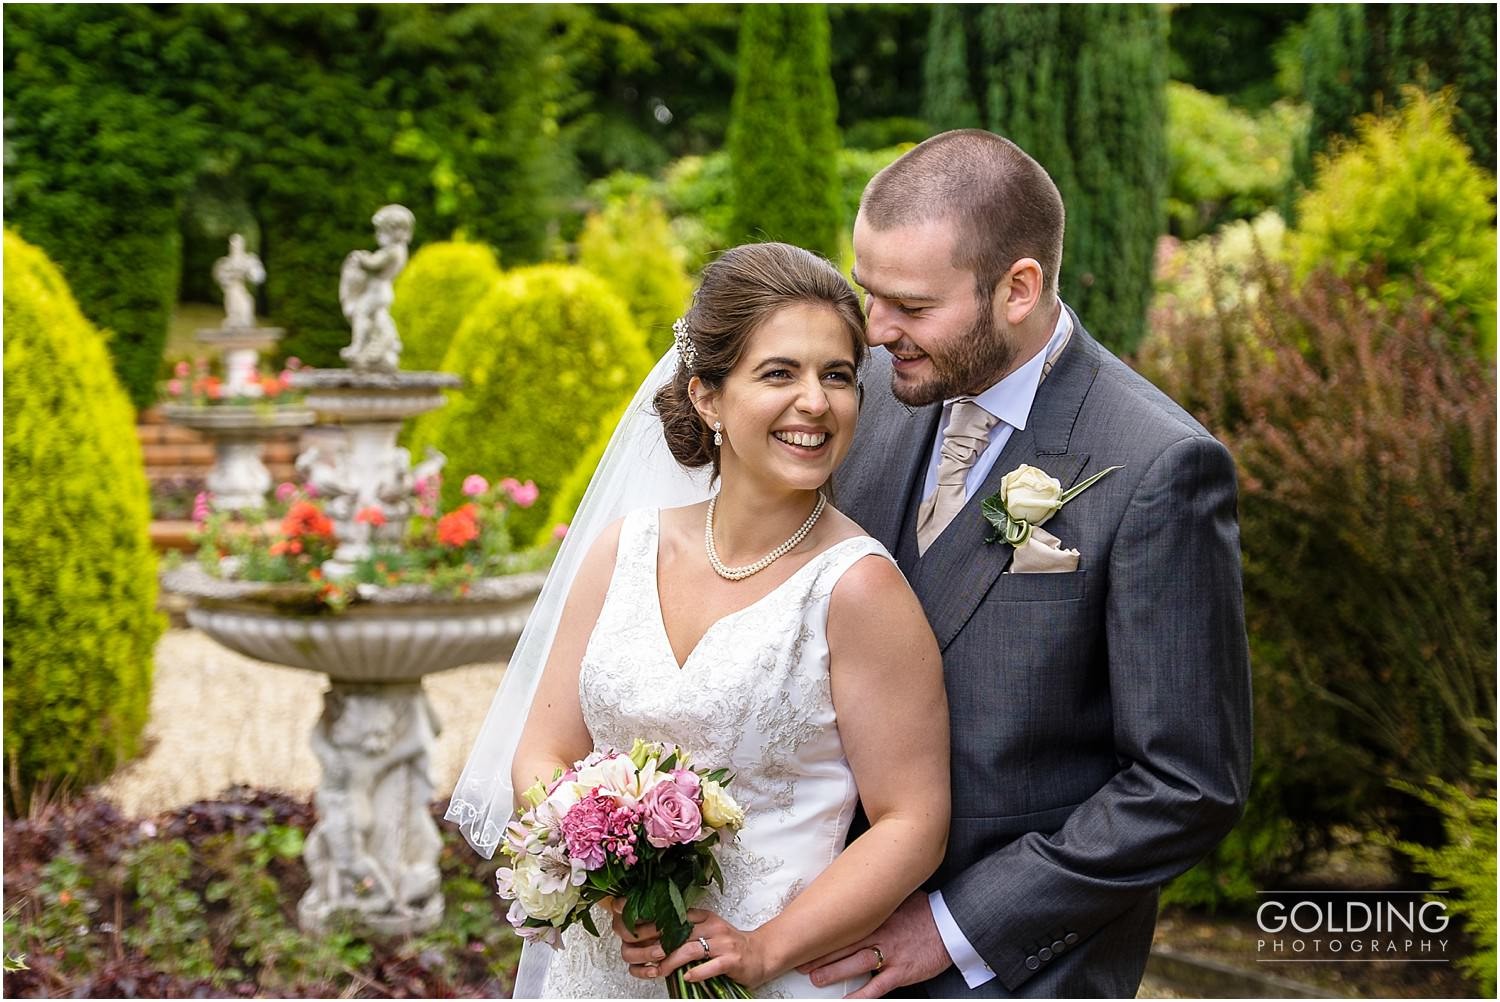 Marianne and Greg's wedding at Nunsmere Hall